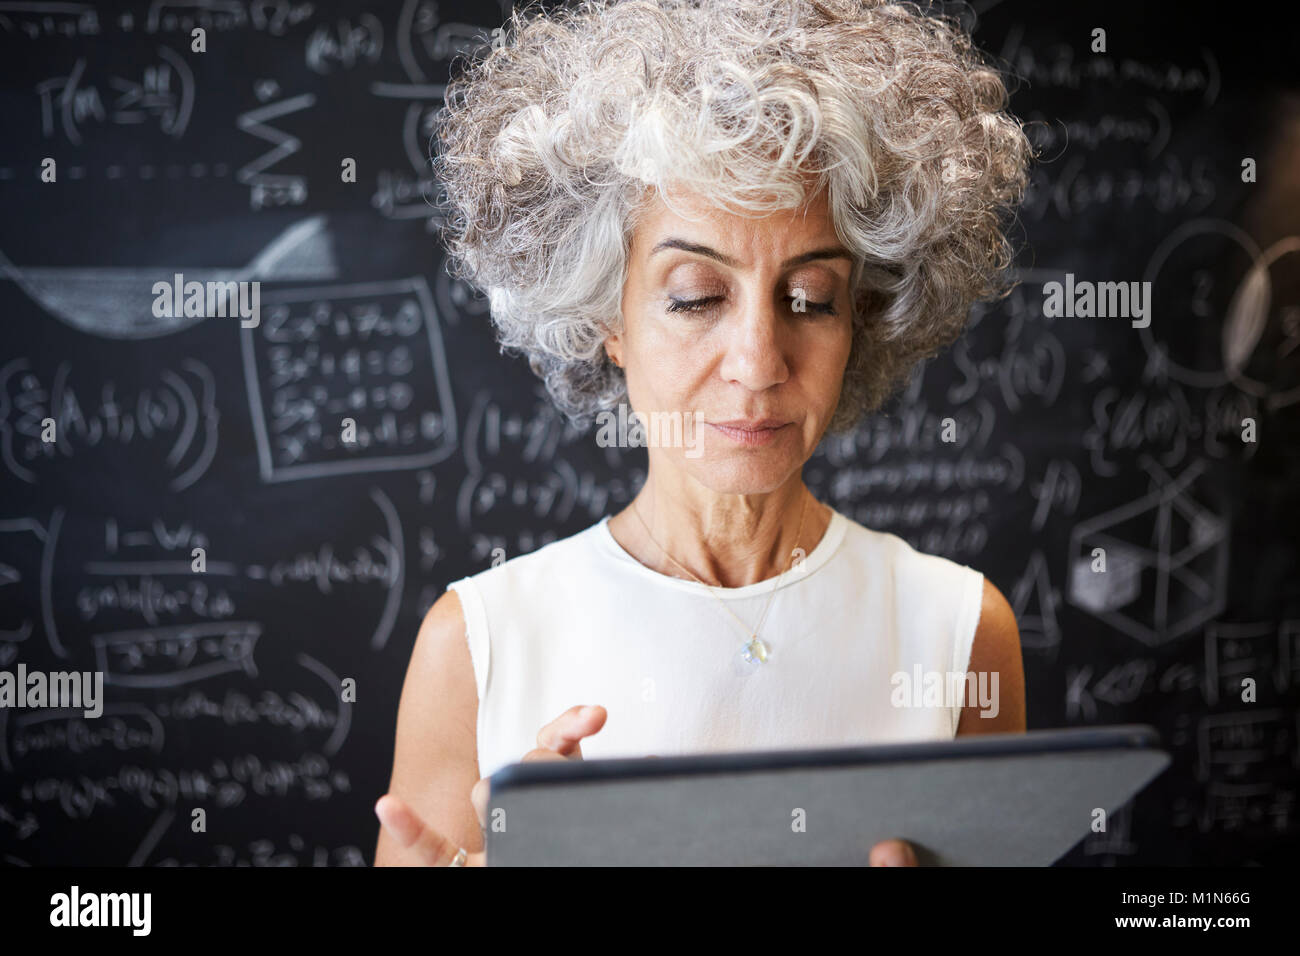 Middle aged academic woman using tablet, close up - Stock Image